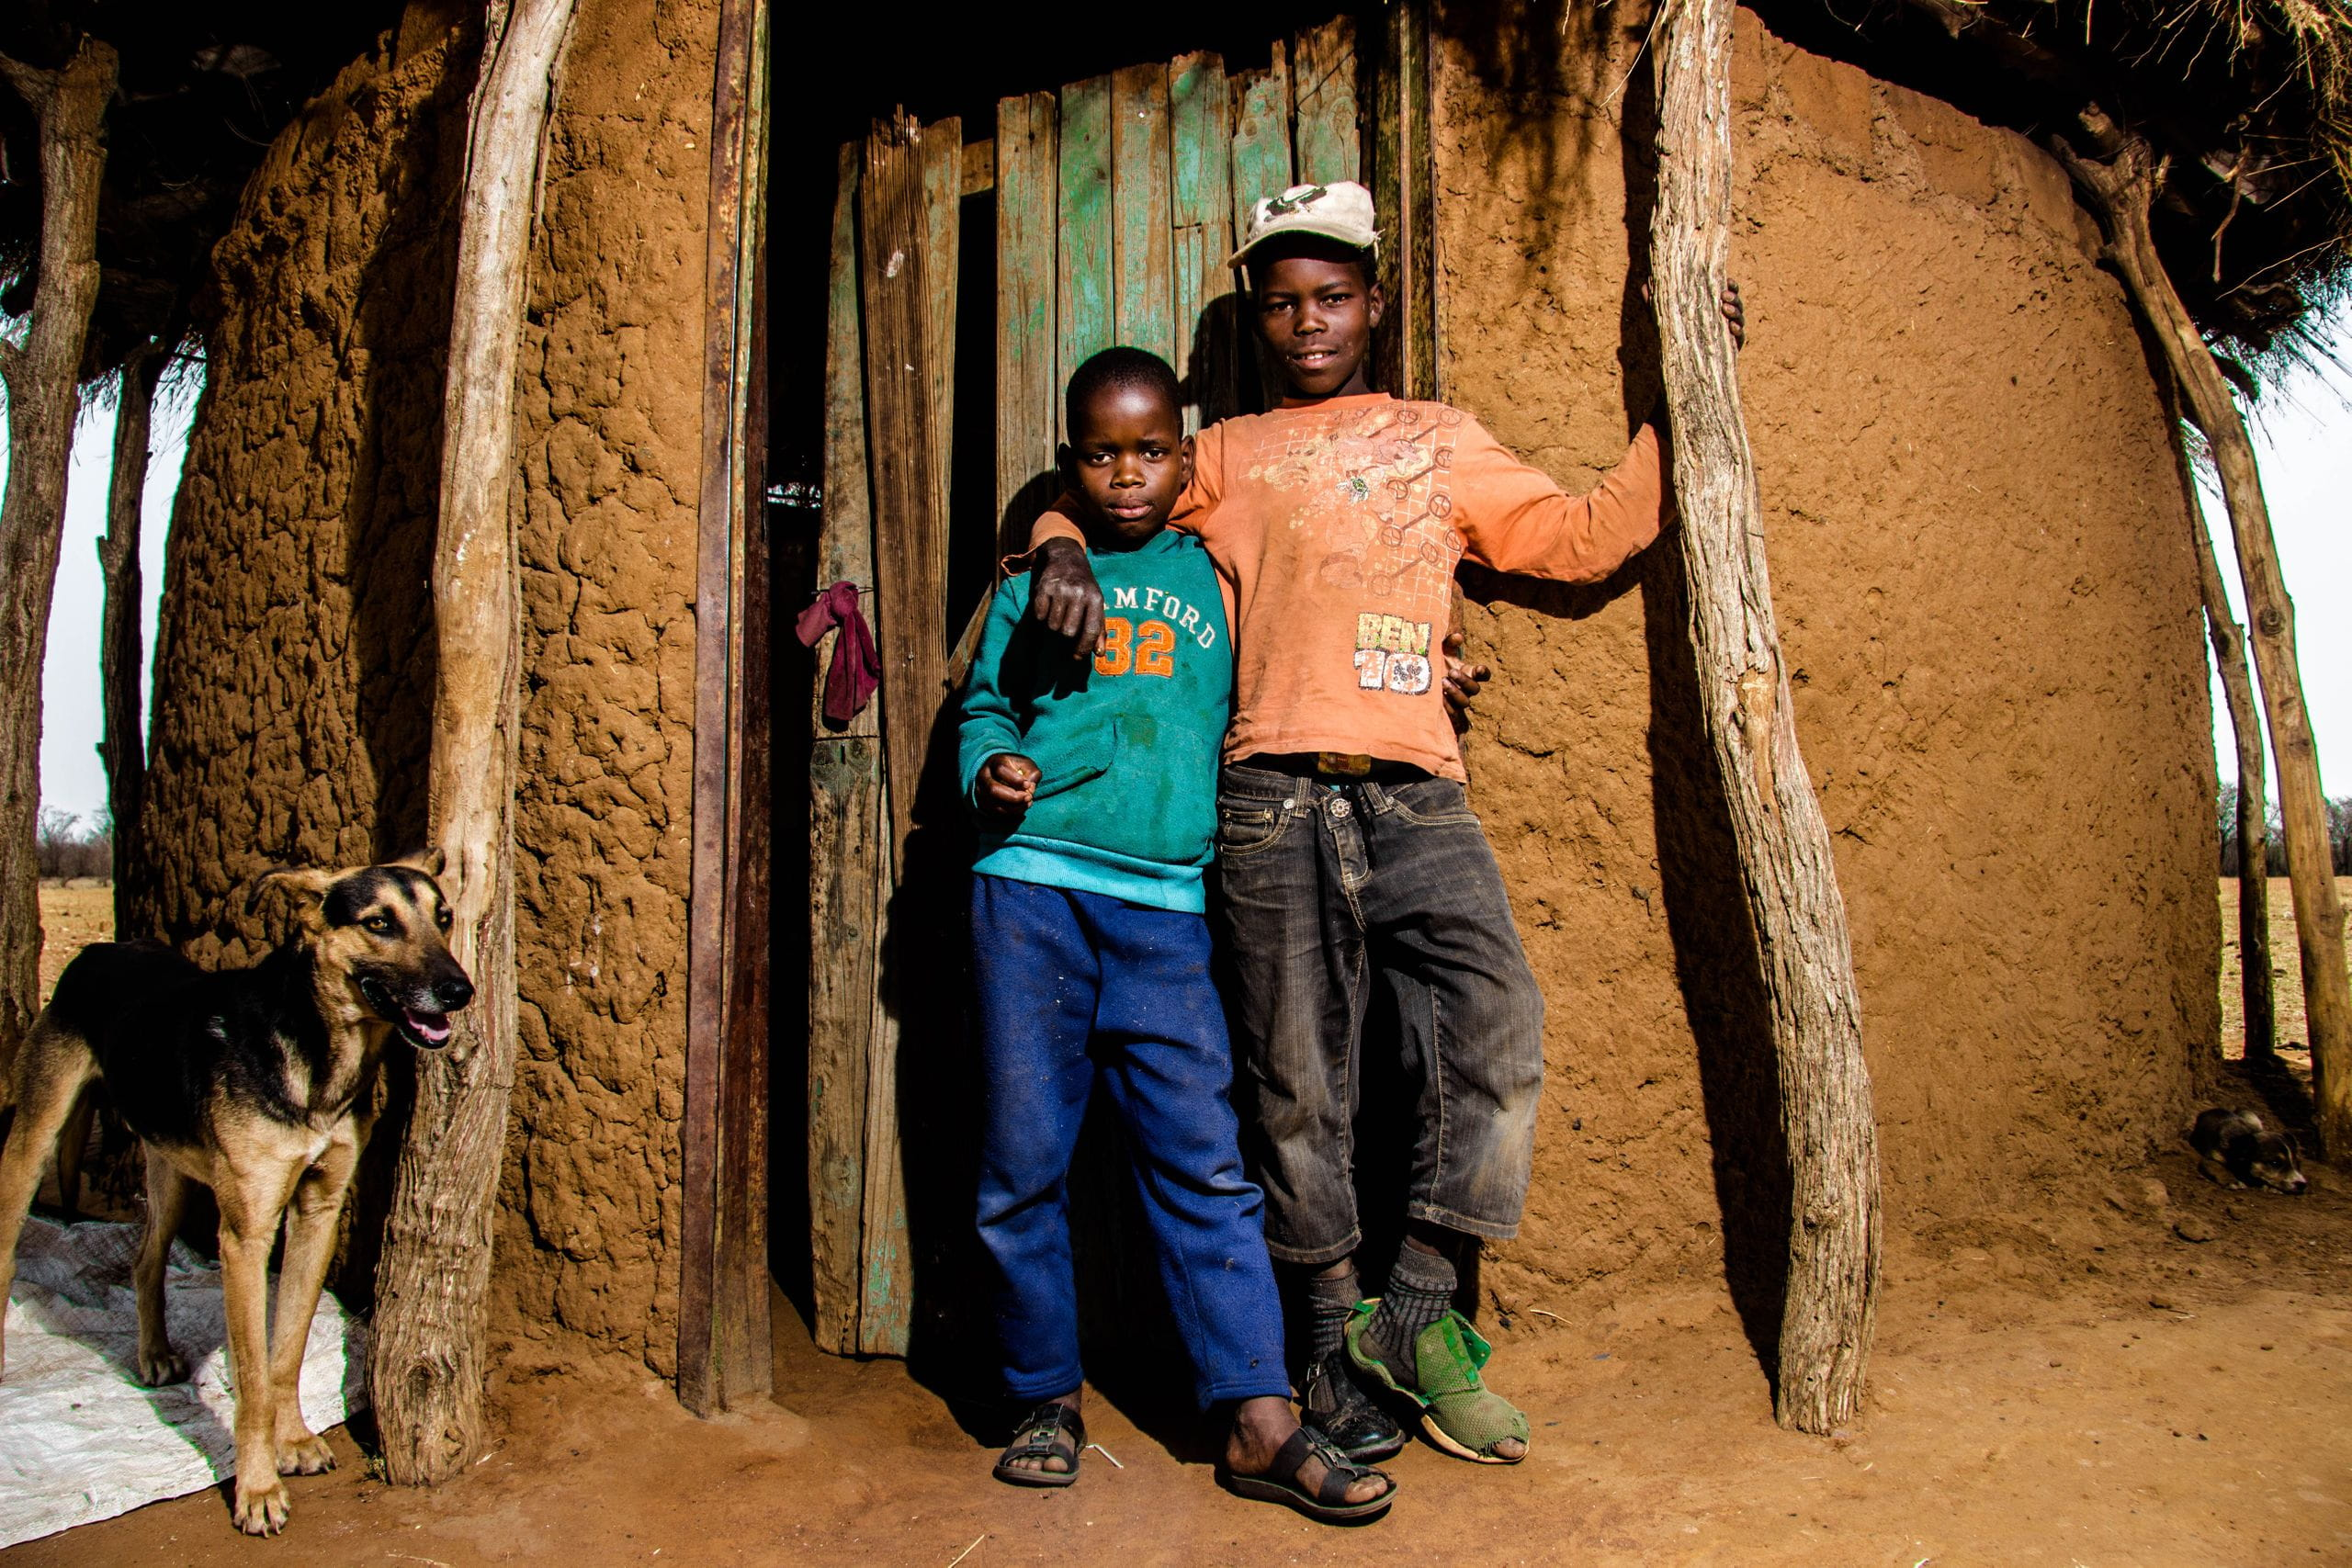 Image of children posing in front a hut in Botswana